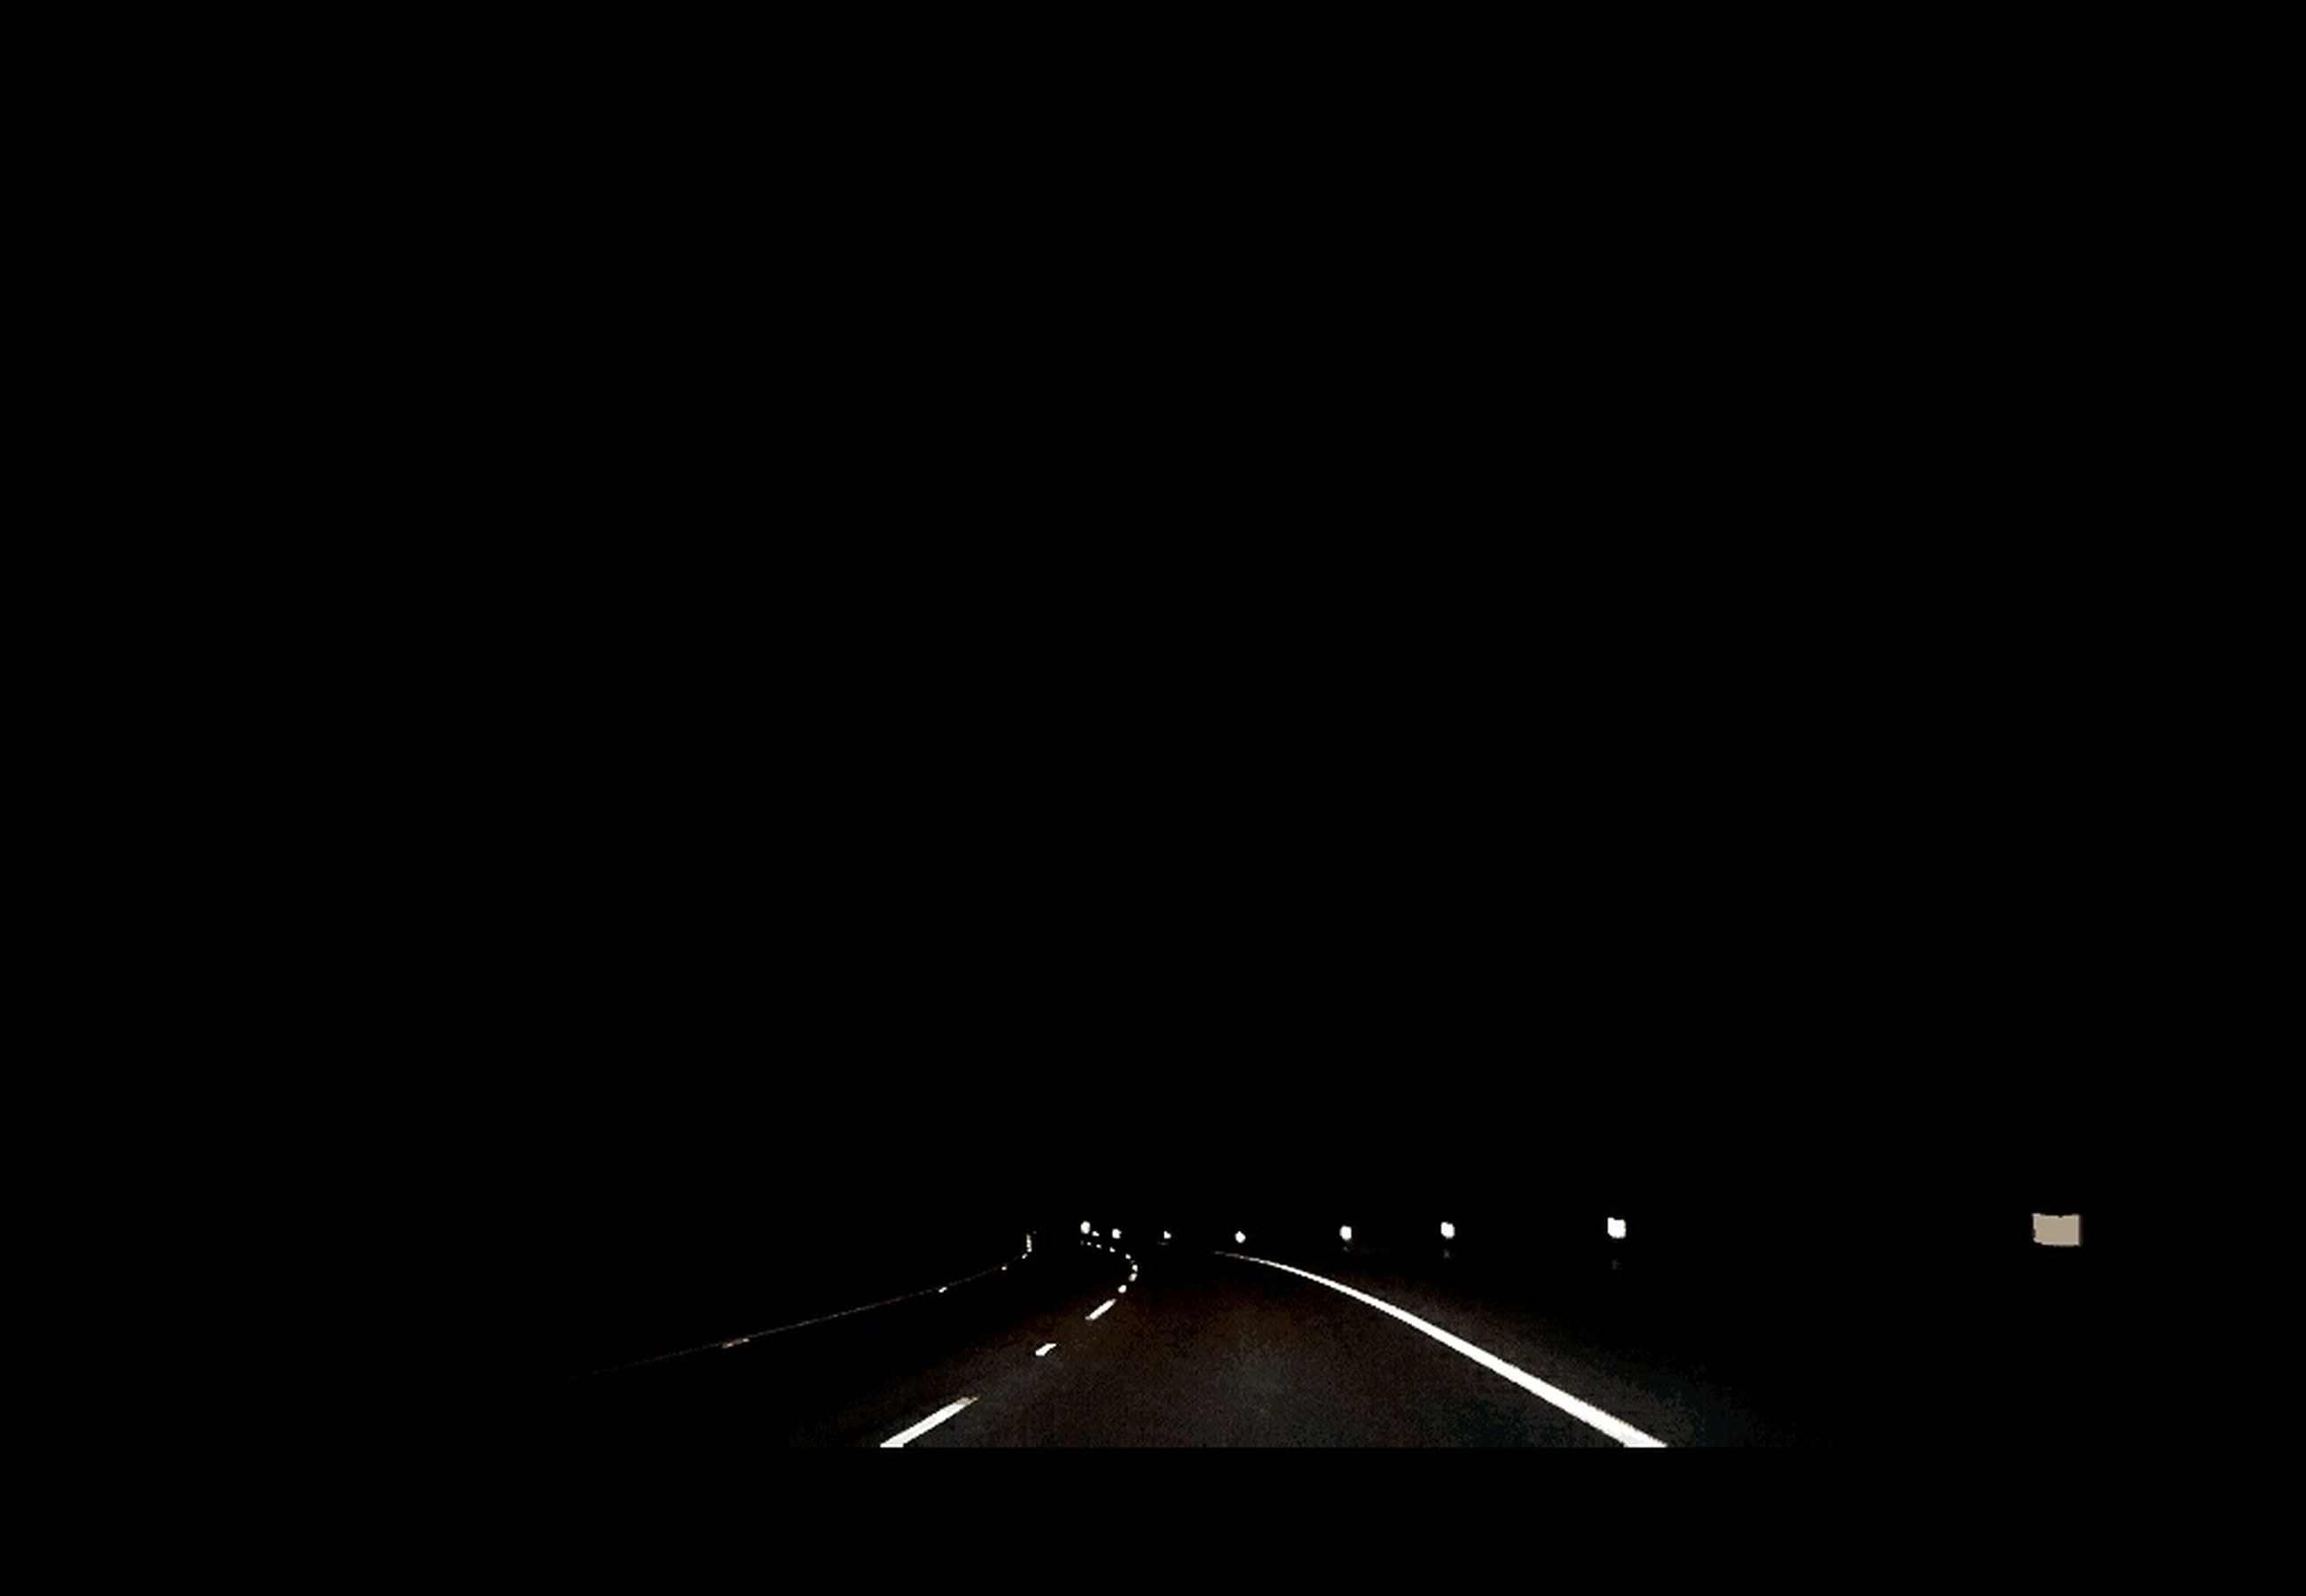 copy space, transportation, road, the way forward, illuminated, night, road marking, diminishing perspective, car, vanishing point, dark, car point of view, tail light